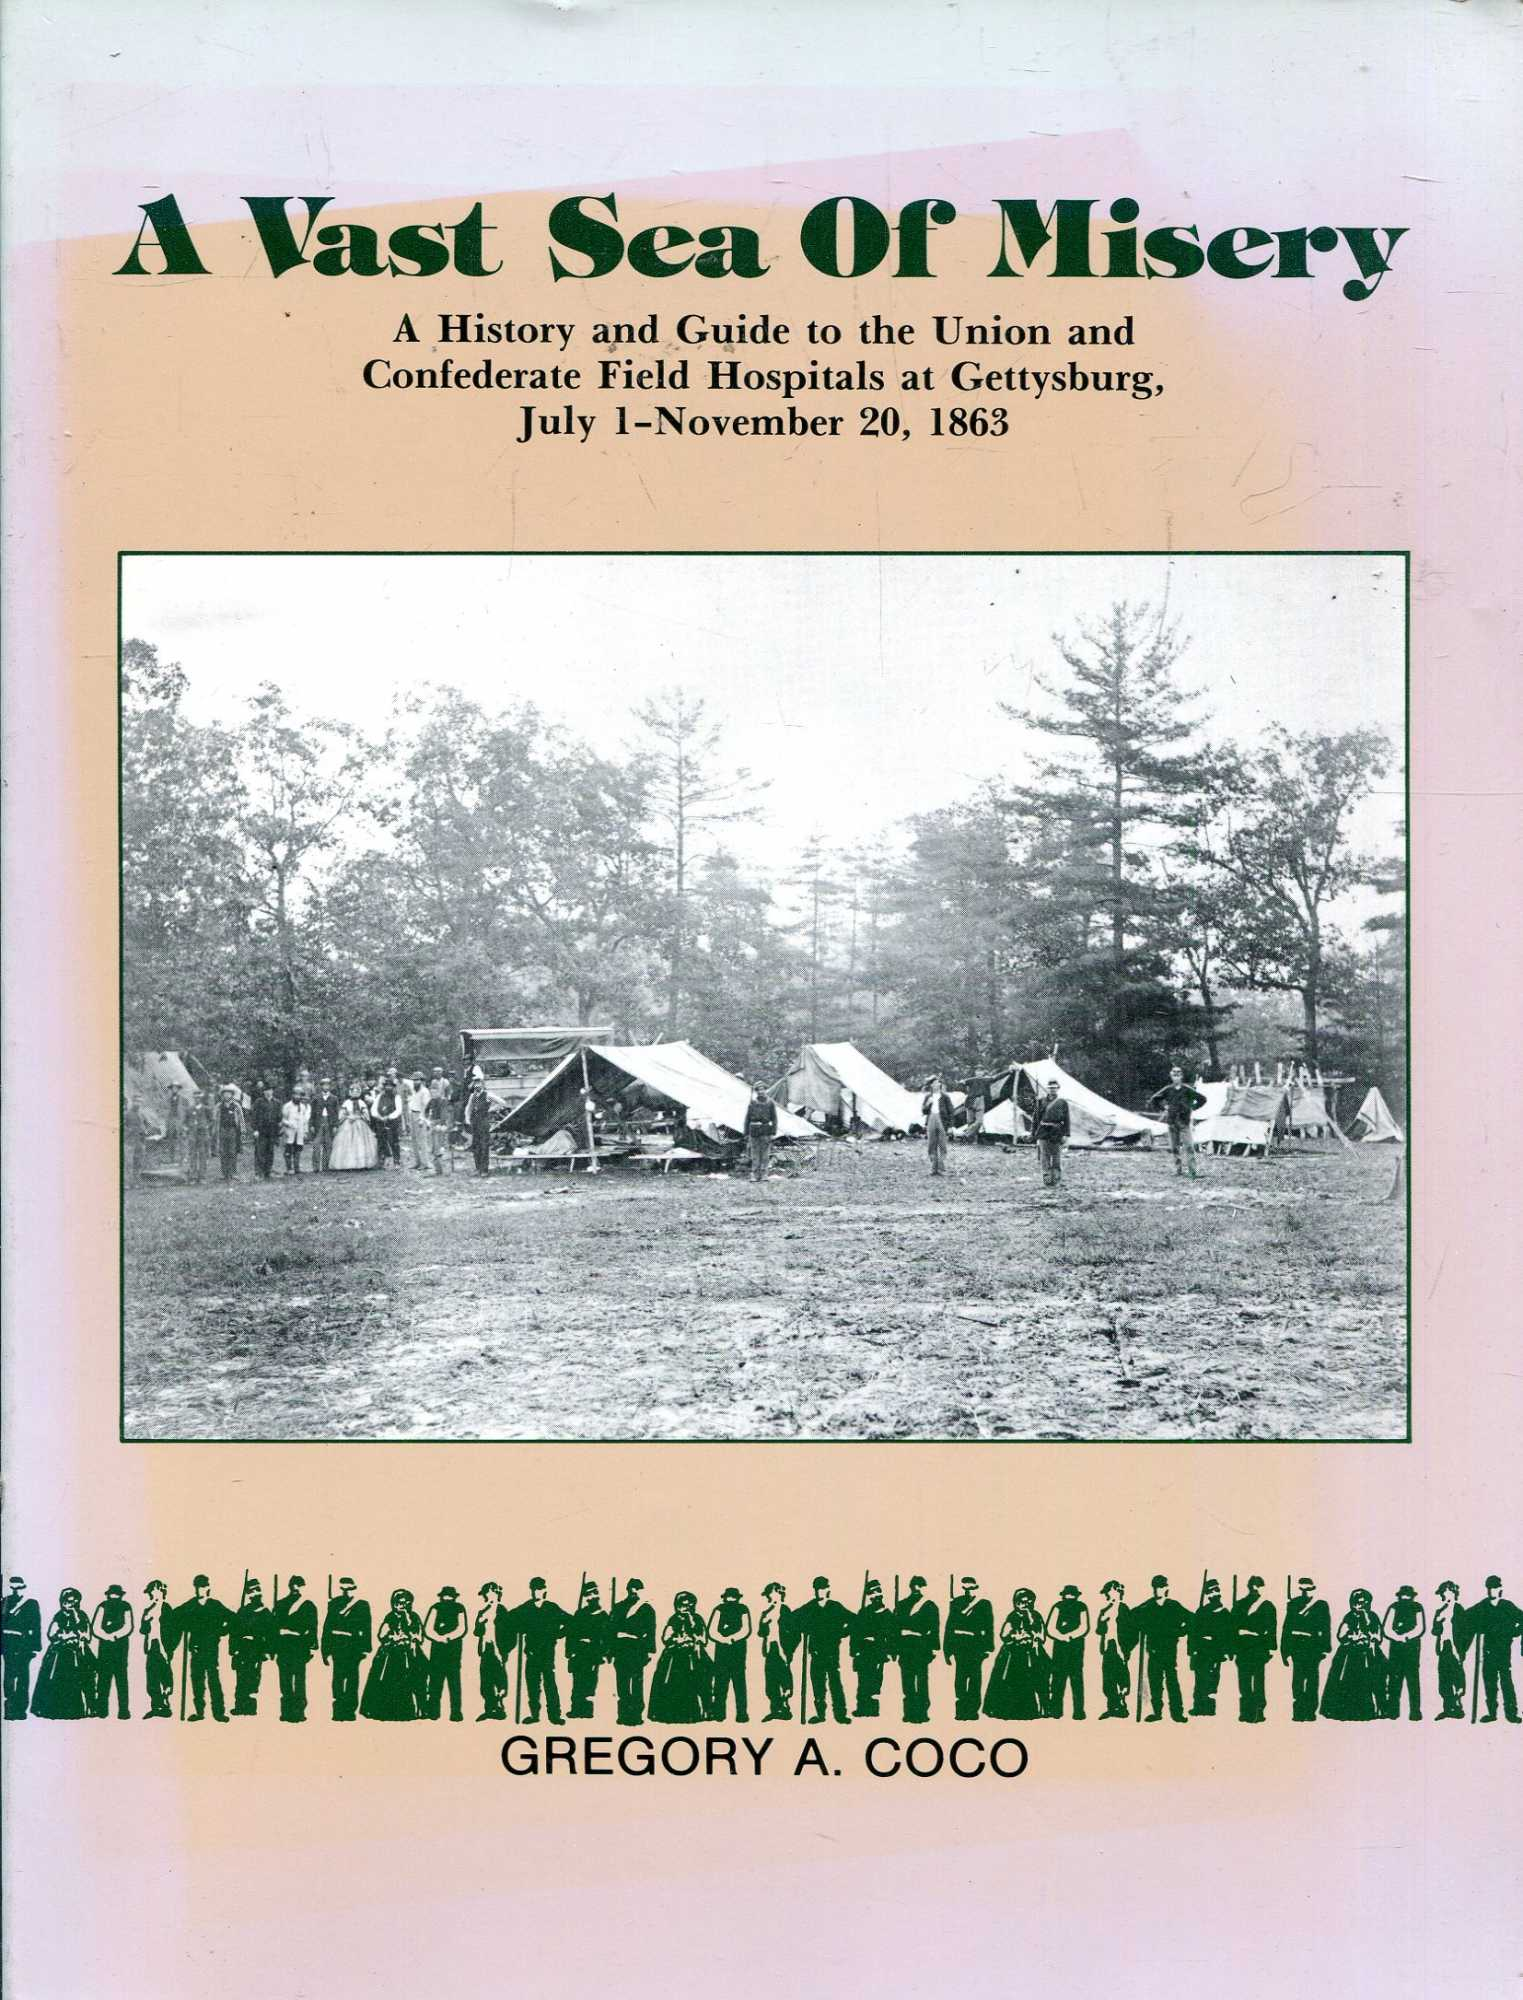 Image for A Vast Sea of Misery: A History and Guide to the Union and Confederate Field Hospitals at Gettysburg, July 1-November 20, 1863